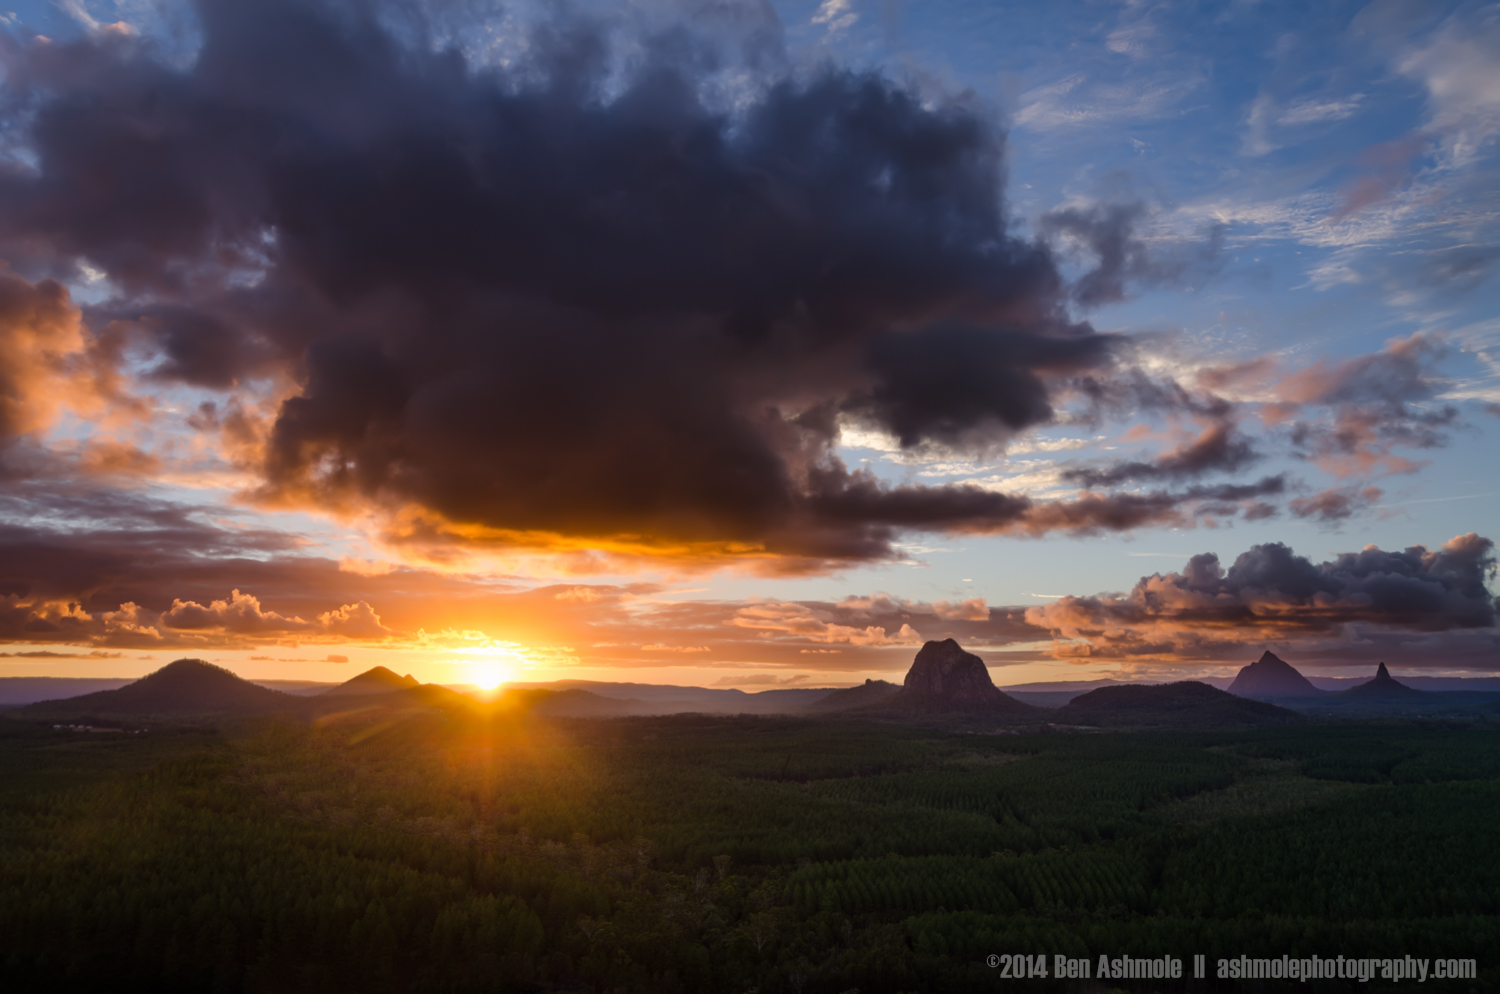 Sunset from Wild Horse Mountain, Glass House Mountains, Queensla